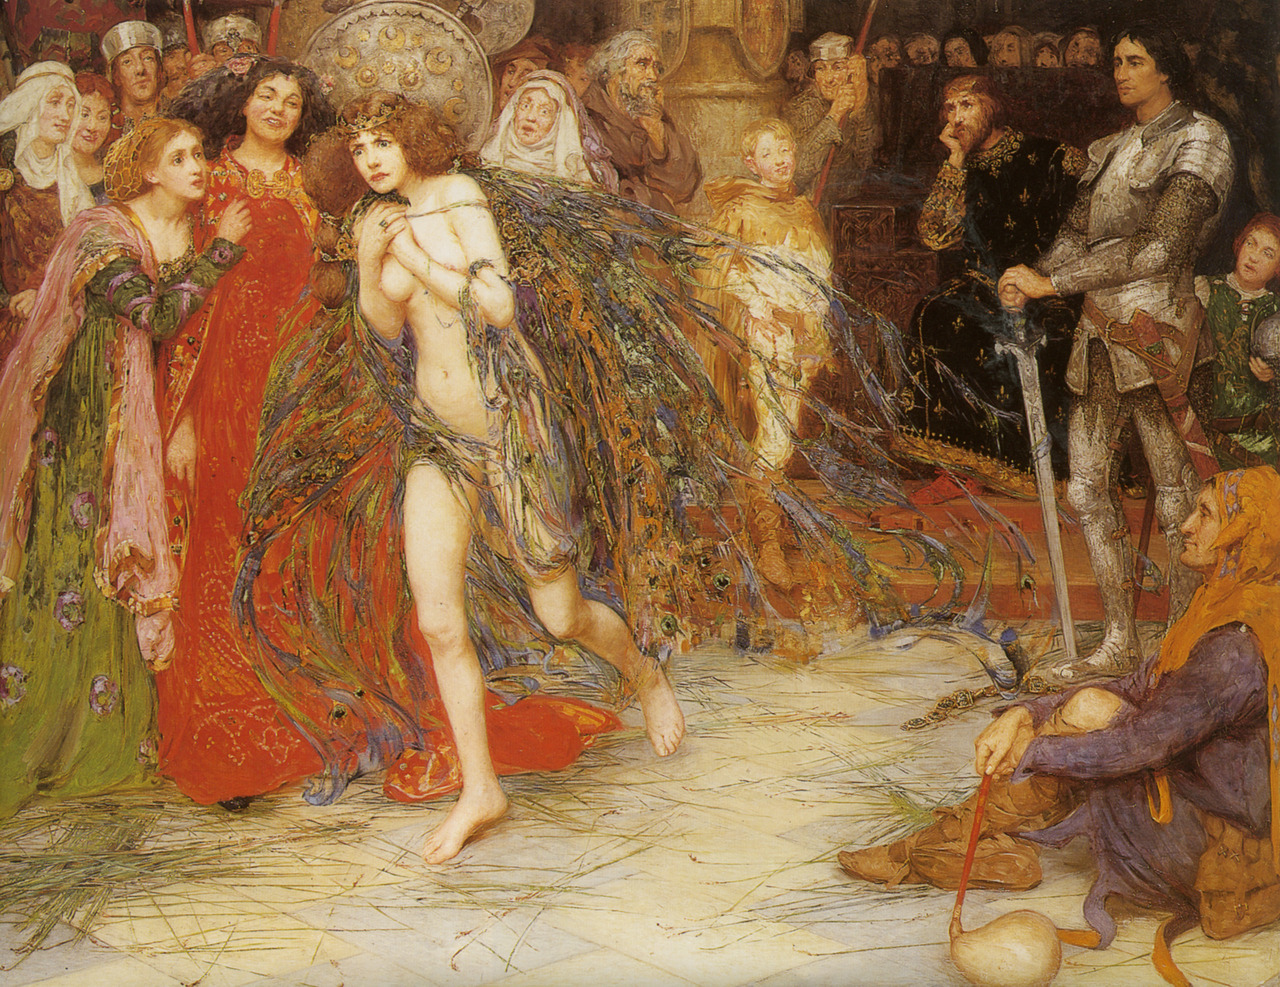 Isobel Lilian Gloag, The Magic Mantle, 1898